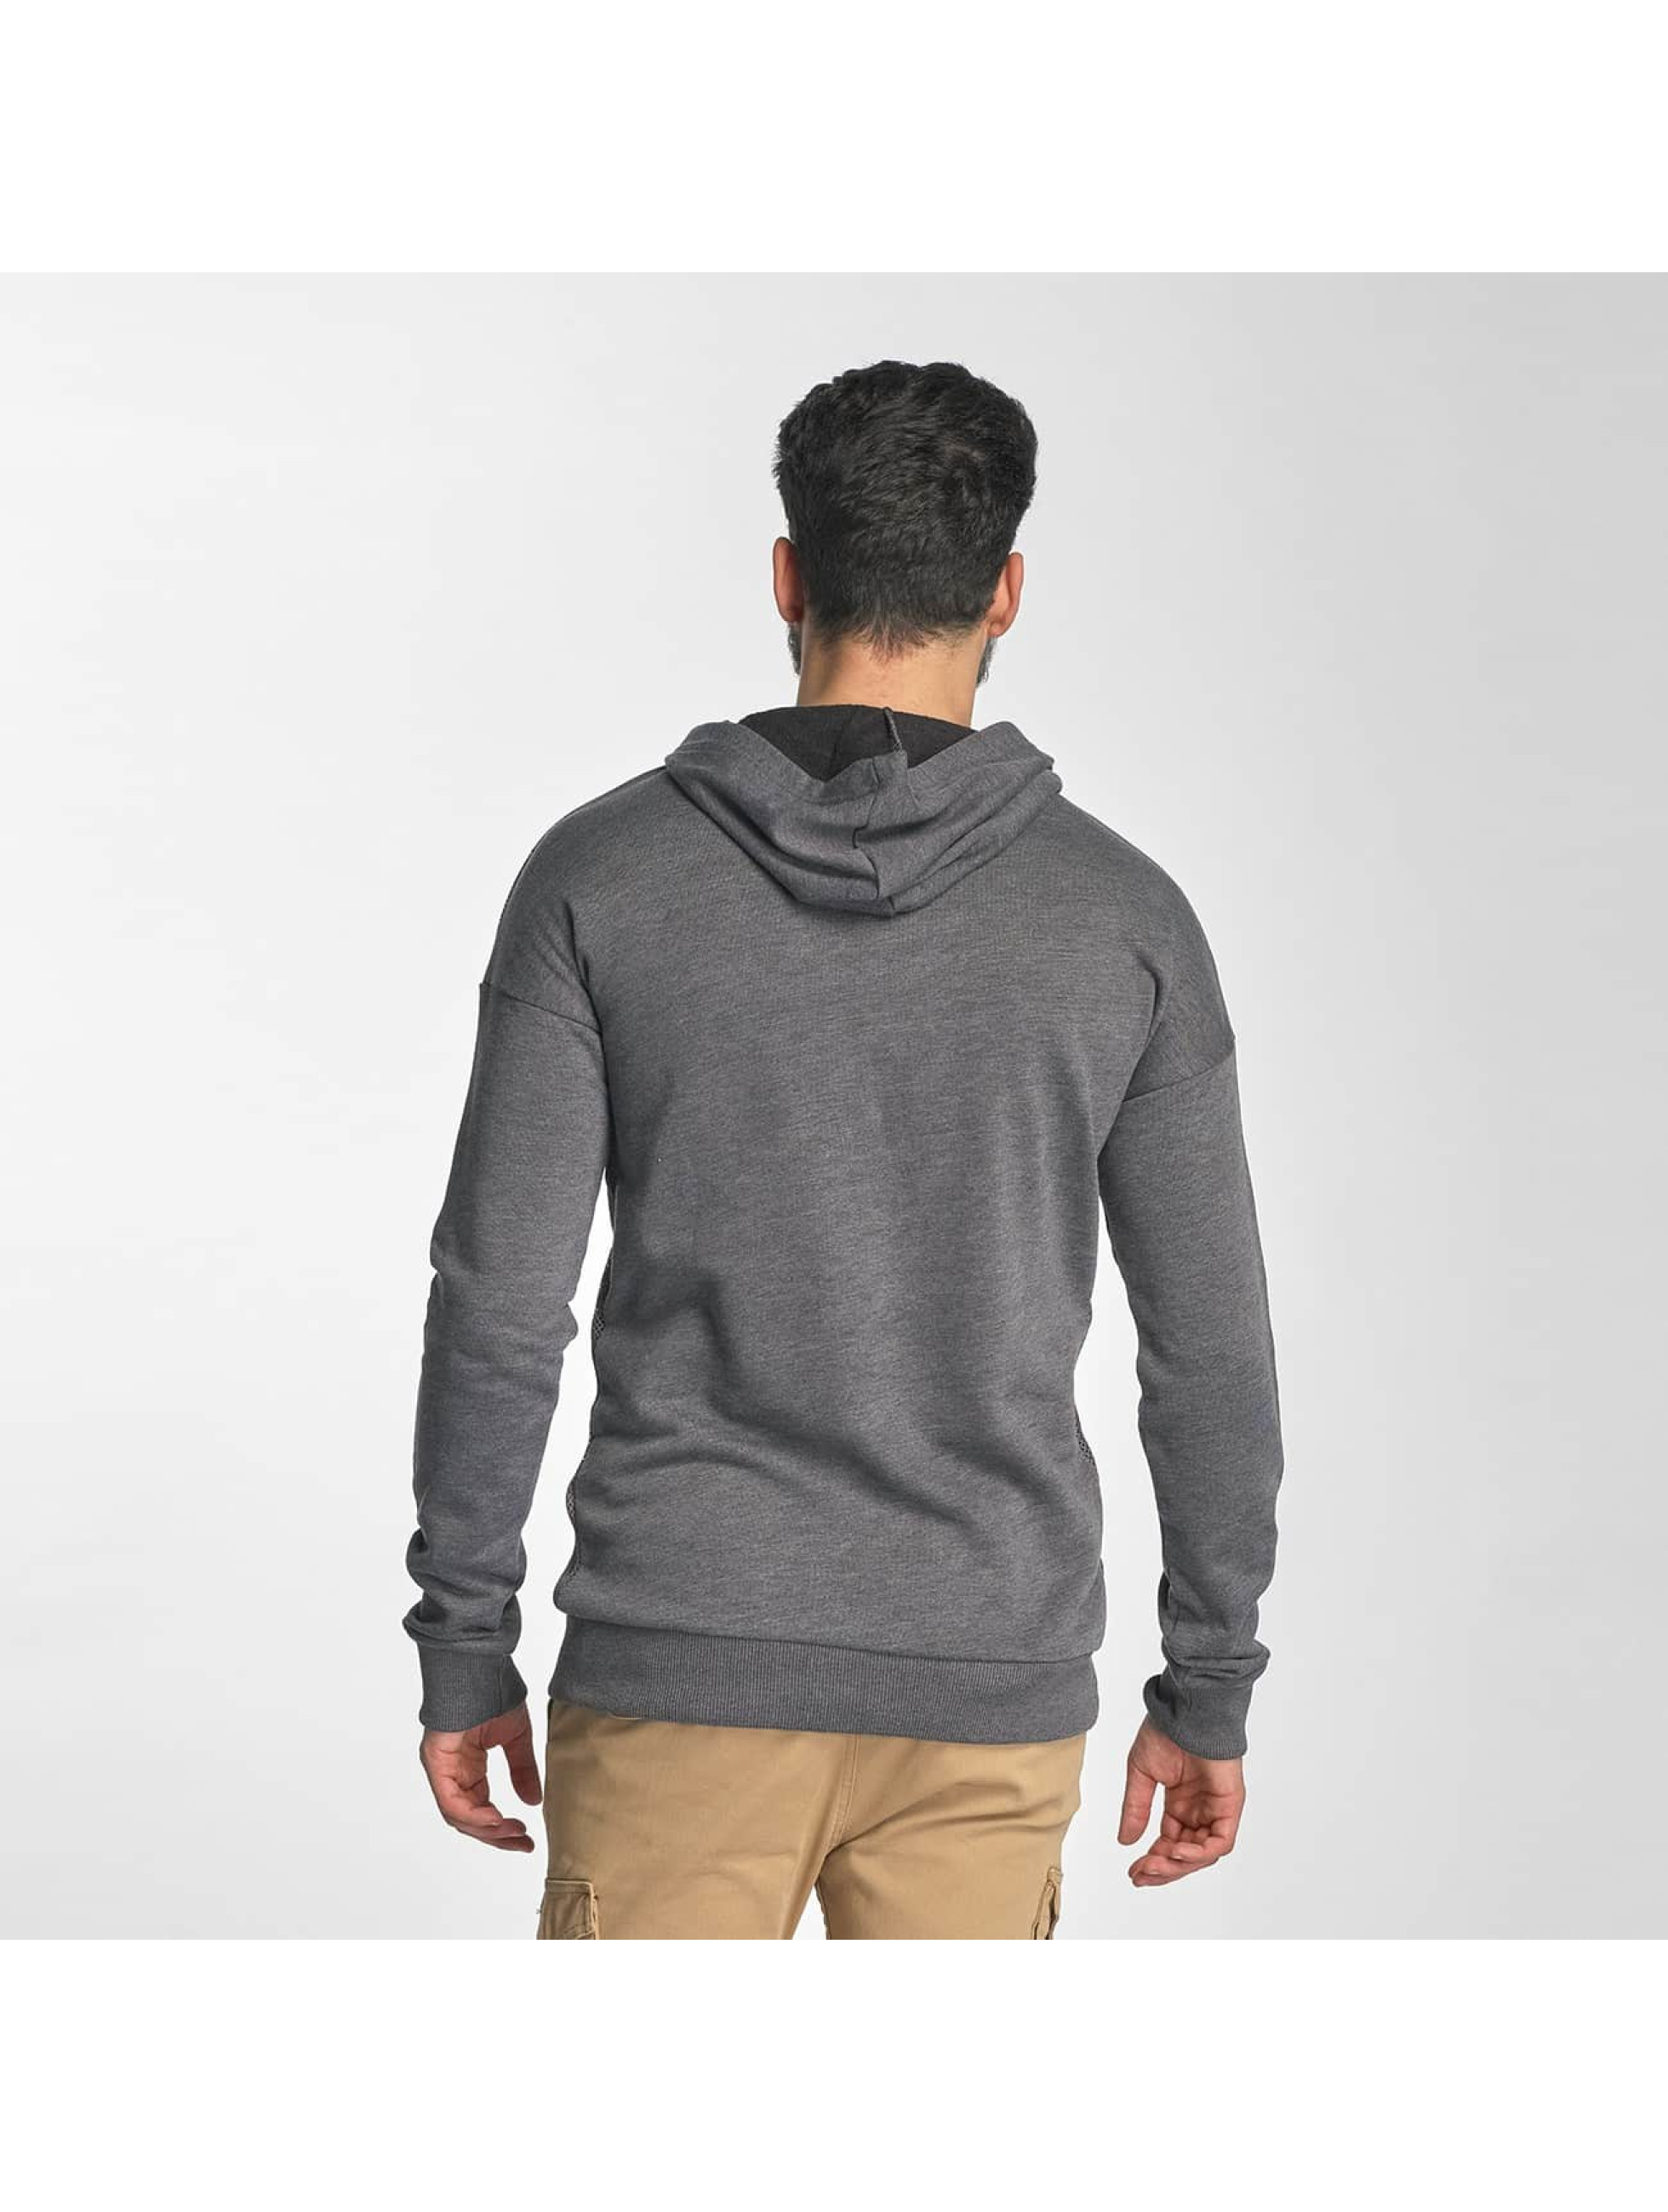 Red Bridge Hoodie Carbon Network gray